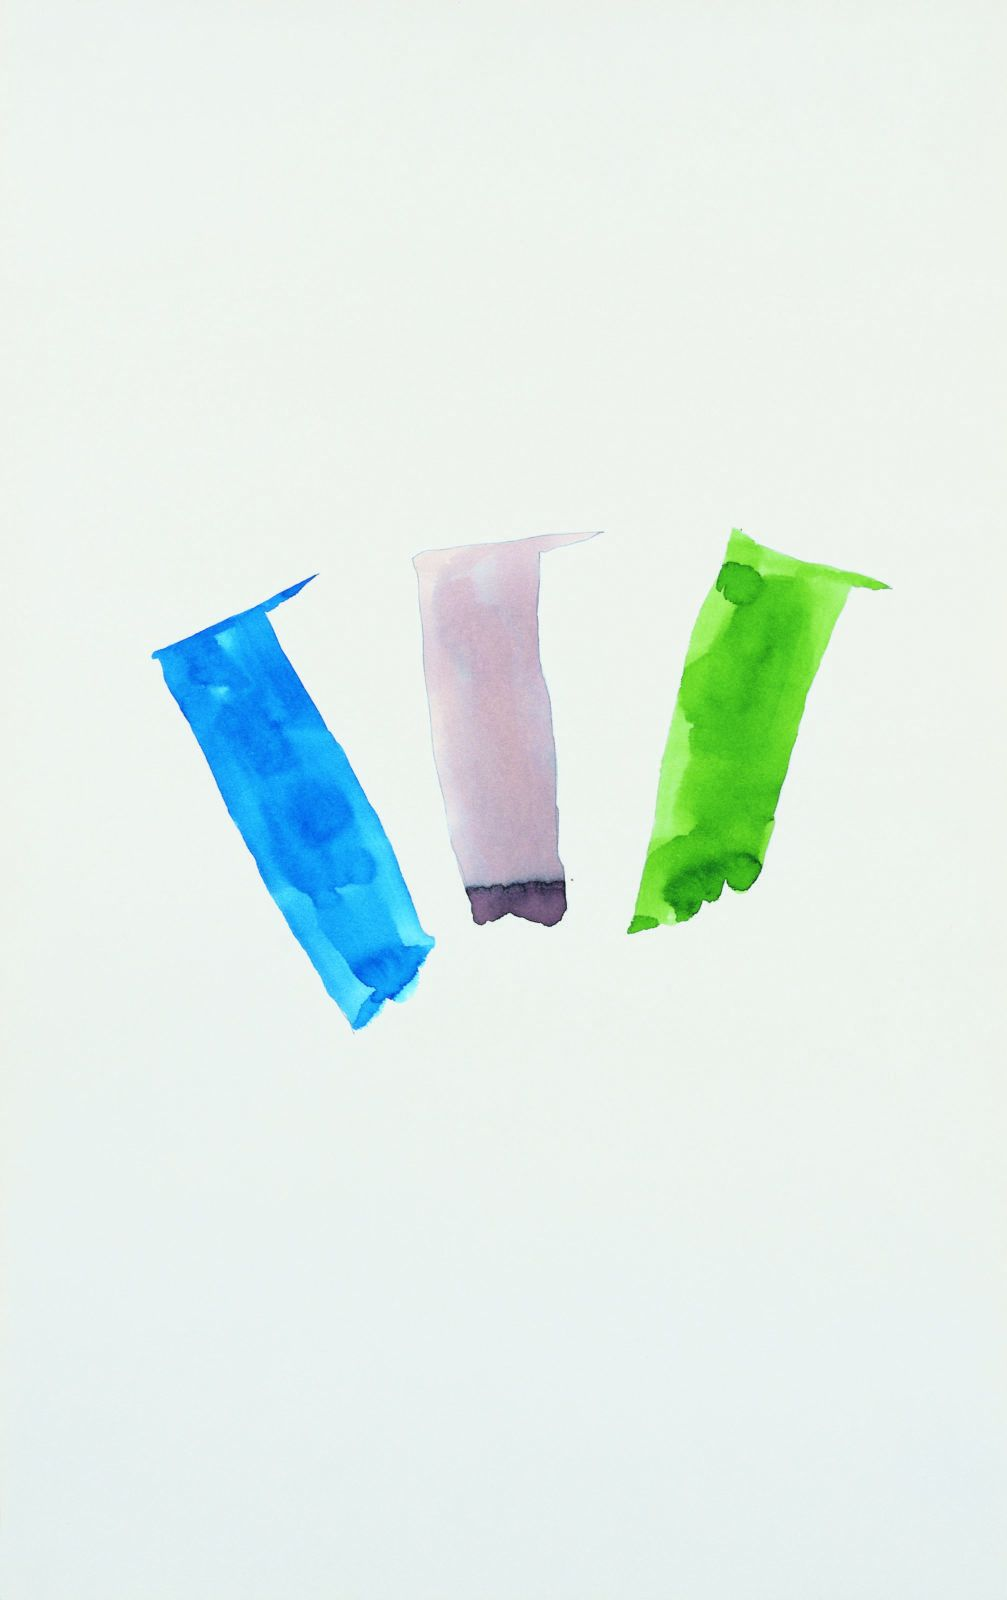 Richard Tuttle, Any Three Colors on My Mind, 1973